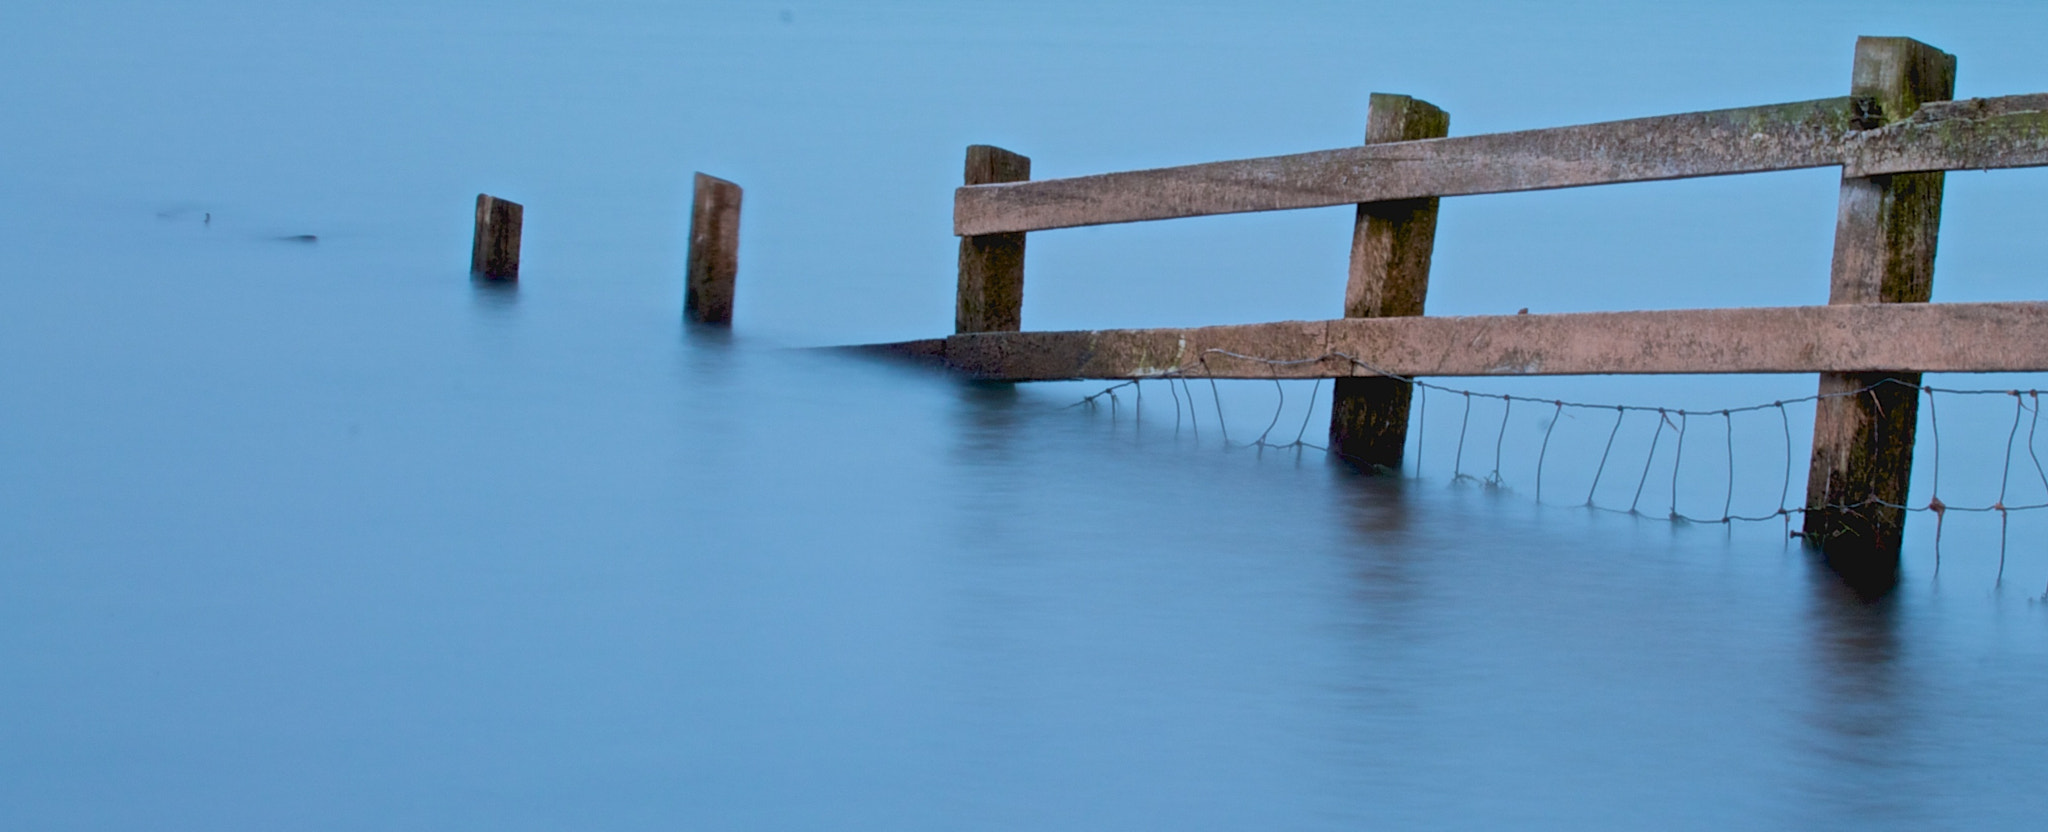 Photograph Rutland Water - Long Exposure  by Darren Smith on 500px